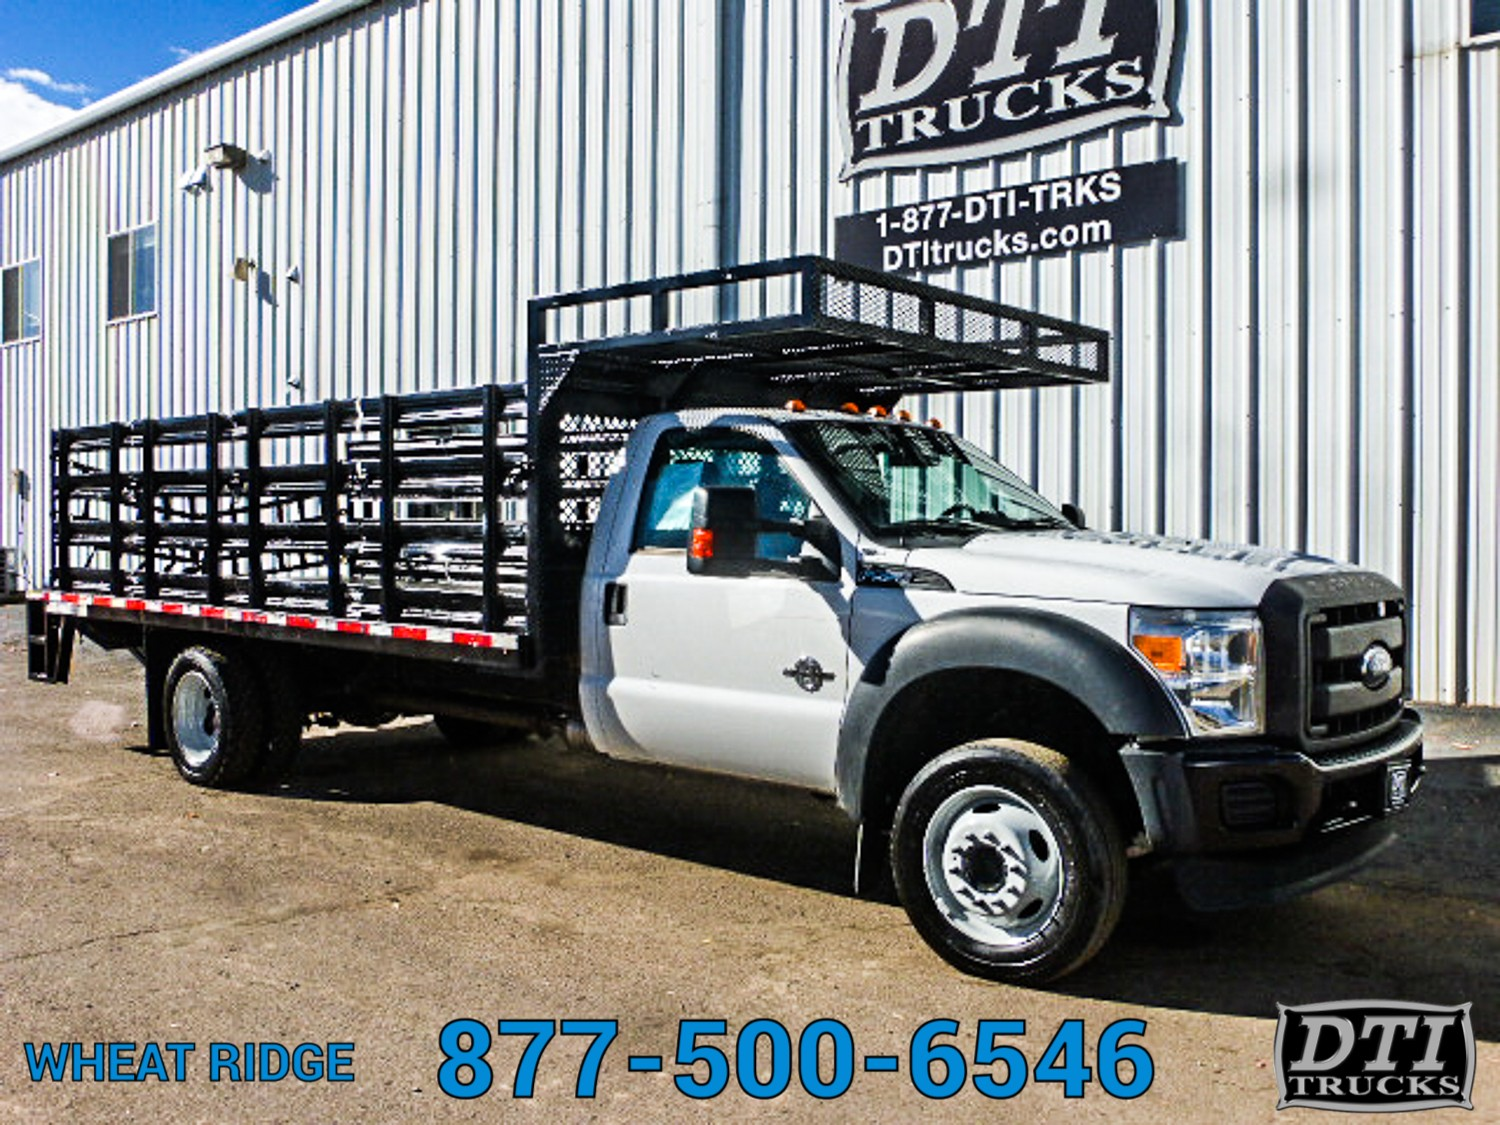 Heavy Duty Truck Dealer in Denver, CO | Truck Fabrication on ford f-150 wiring, ford truck wiring, ford f350 wiring, ford escape wiring, ford ranger wiring, ford f53 wiring, ford mustang wiring, ford f800 wiring, ford excursion wiring, ford super duty wiring, ford f500 wiring, ford probe wiring, ford f650 wiring, ford maverick wiring, ford l9000 wiring, ford bronco wiring, ford e450 wiring, ford f450 wiring, ford aerostar wiring, ford f100 wiring,